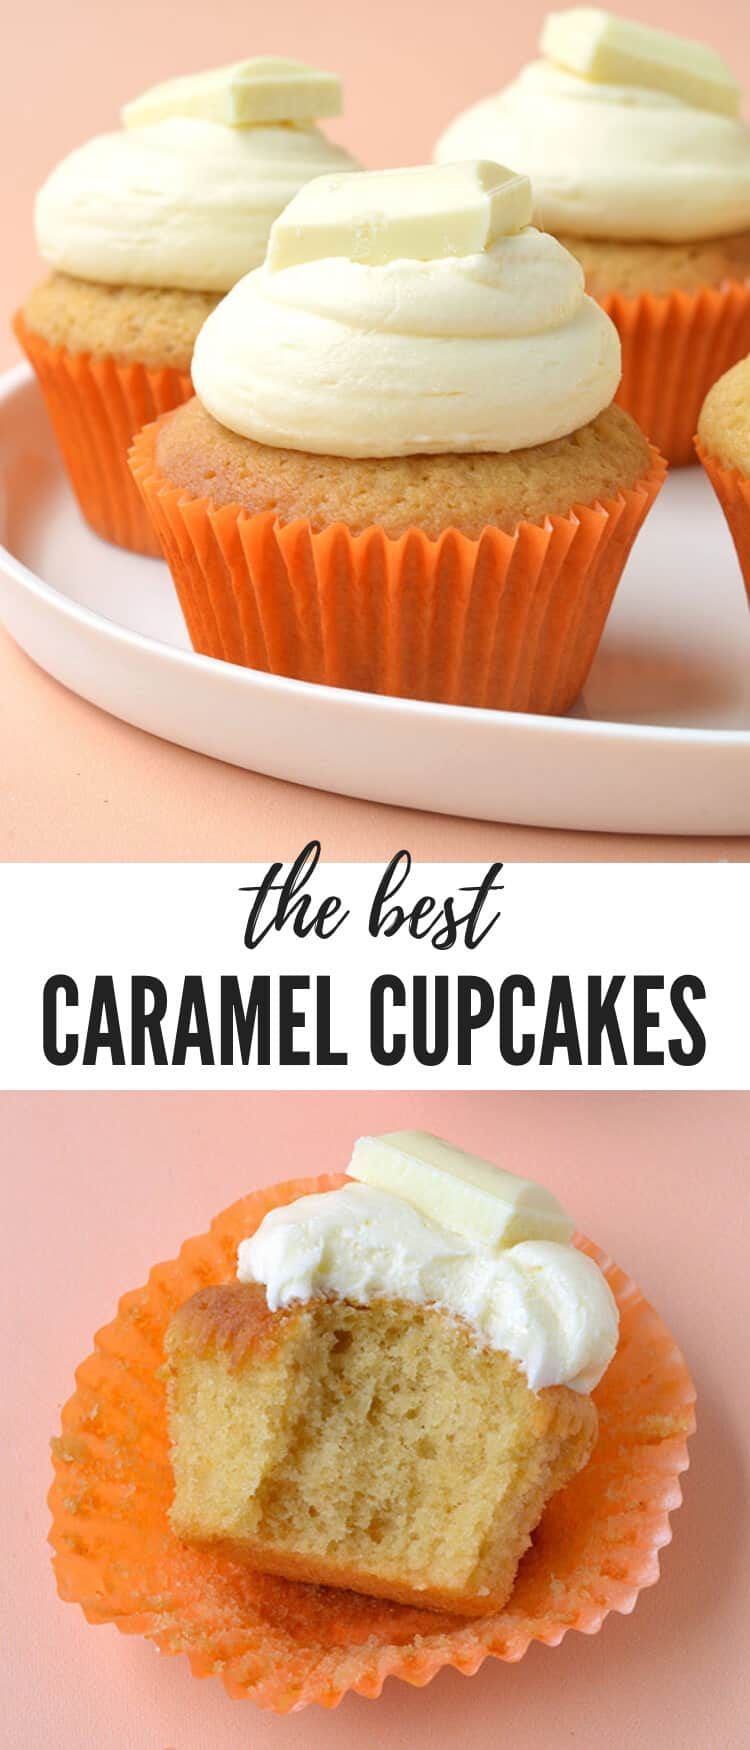 These are hands down the BEST Caramel Cupcakes I've ever had. Made with brown sugar and white chocolate, these cupcakes are topped with a luscious white chocolate buttercream. Recipe on sweetestmenu.com #cupcakes #caramel #cake #whitechocolate